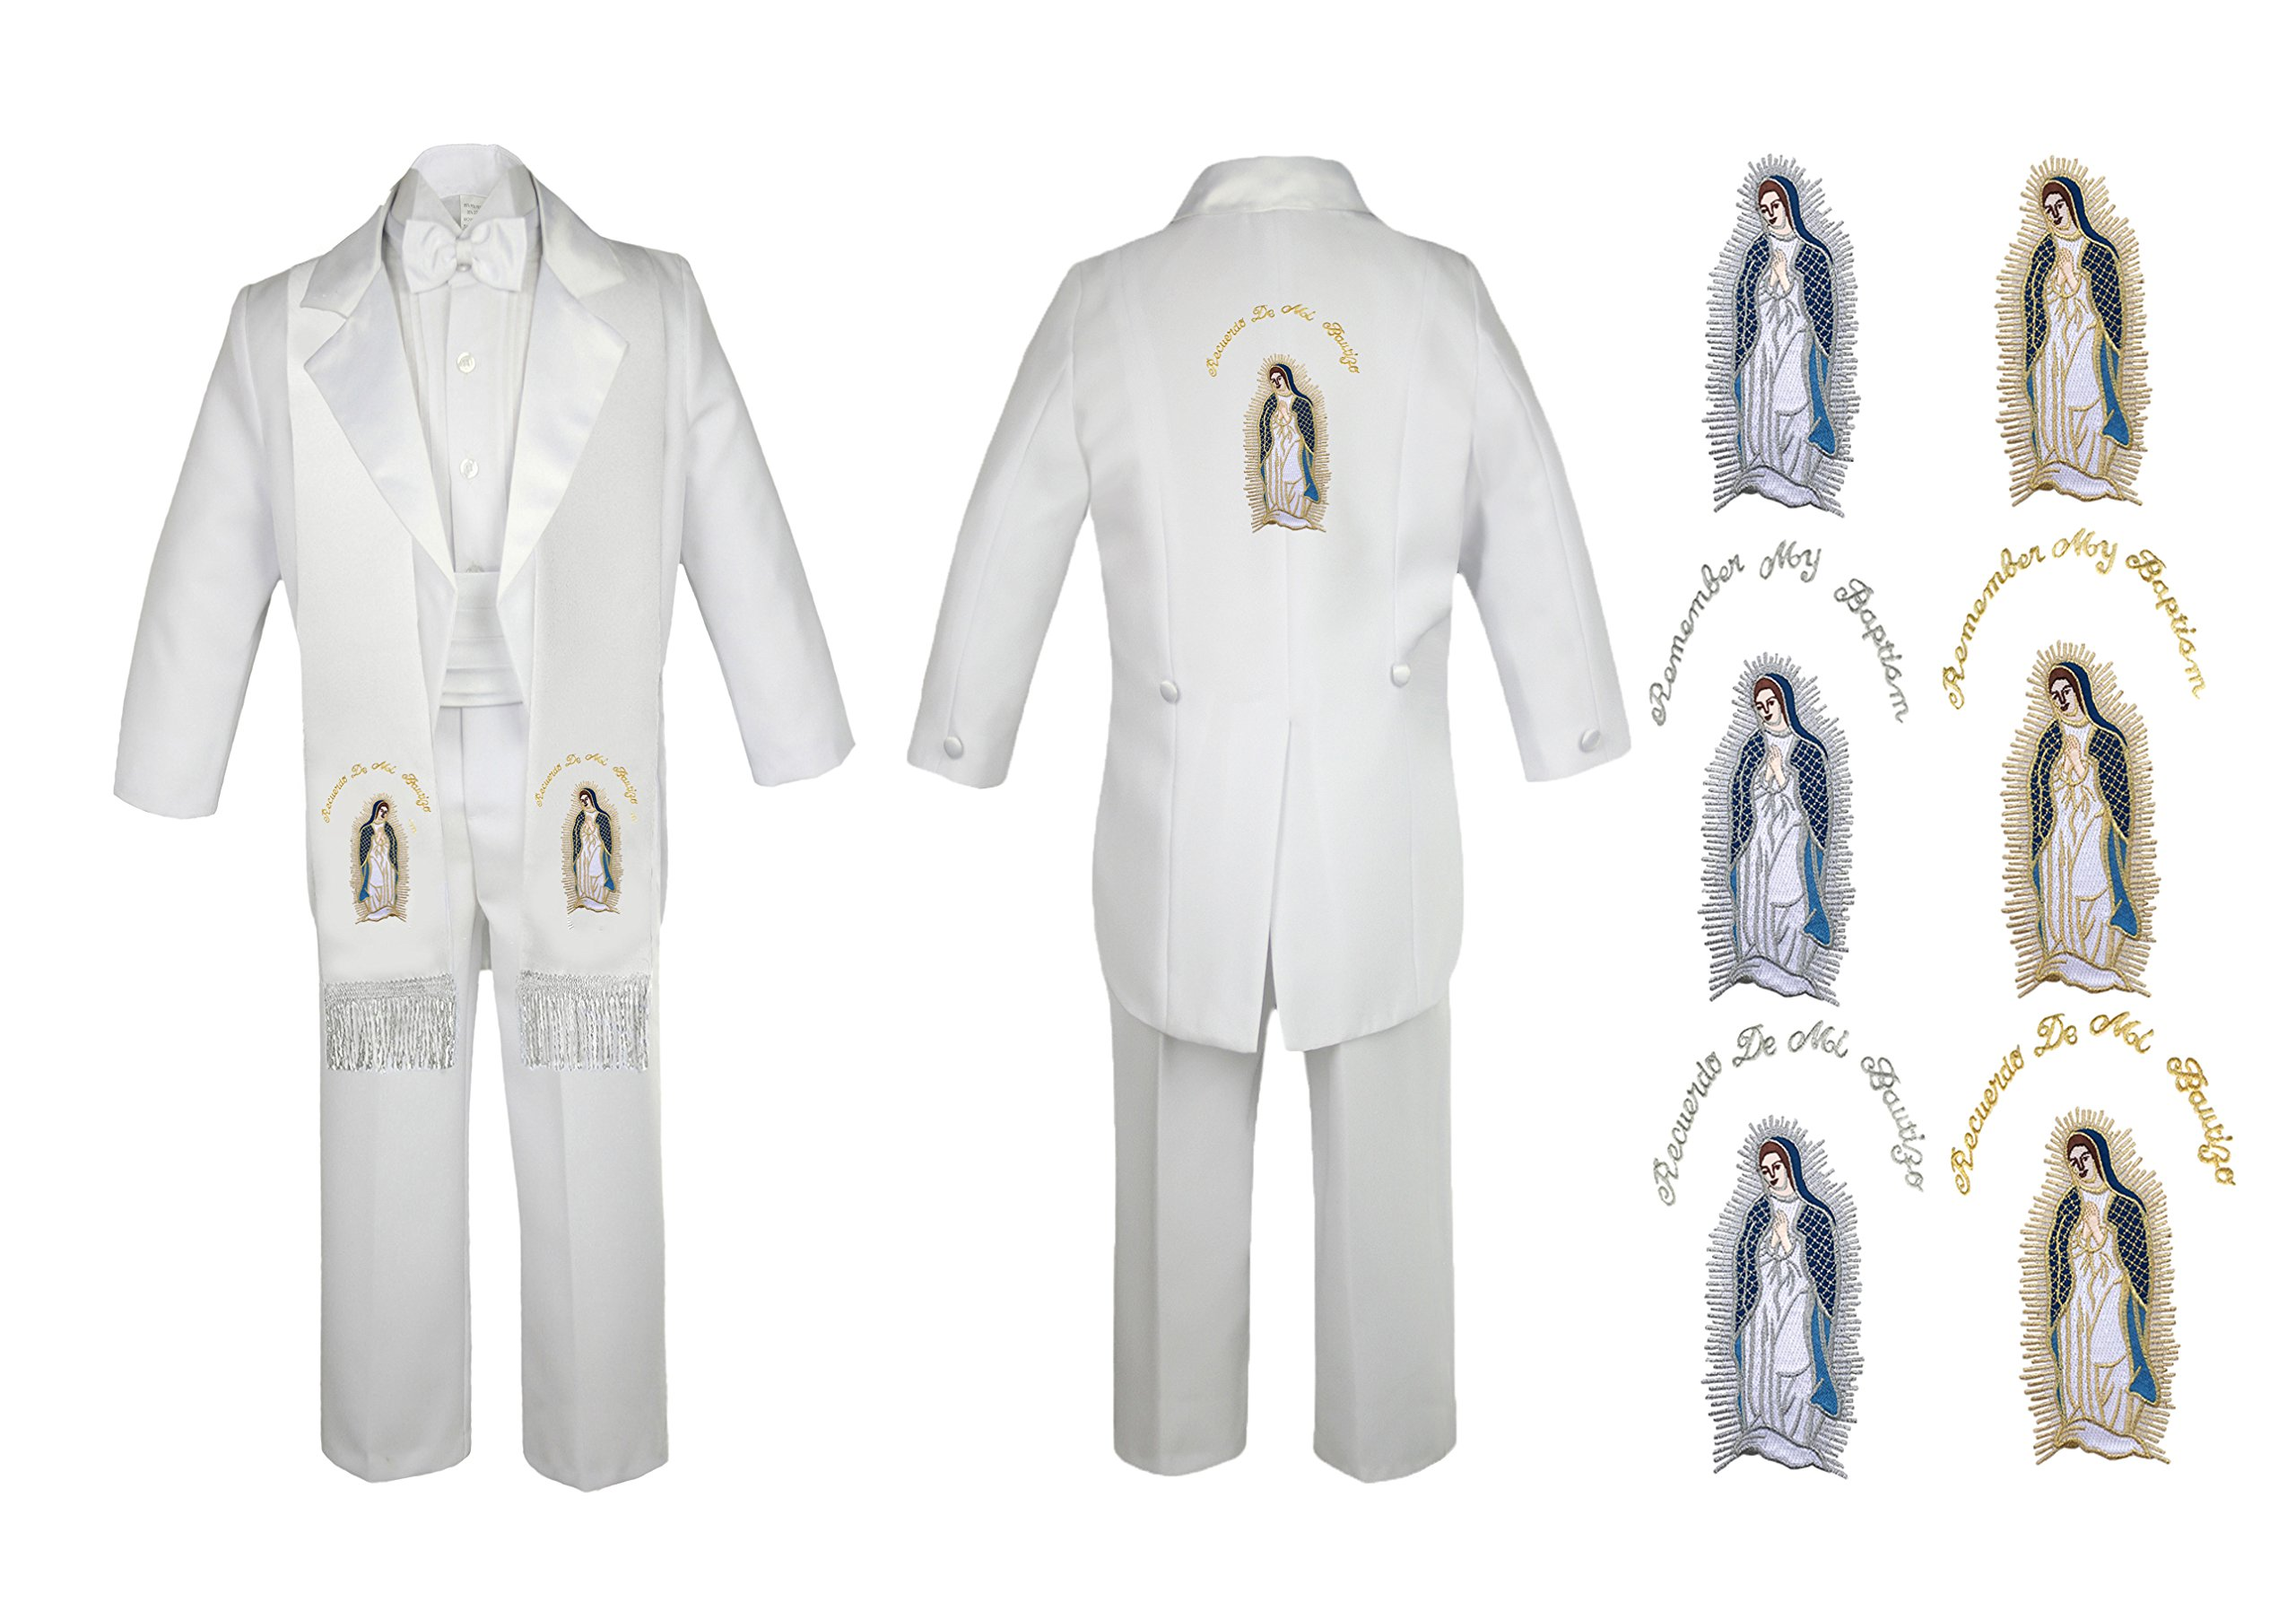 Baby Boy Christening Baptism Church White Tail Suit Mary Maria Stole Back Sm-7 (3T, Full Color Silver English) by Unotux